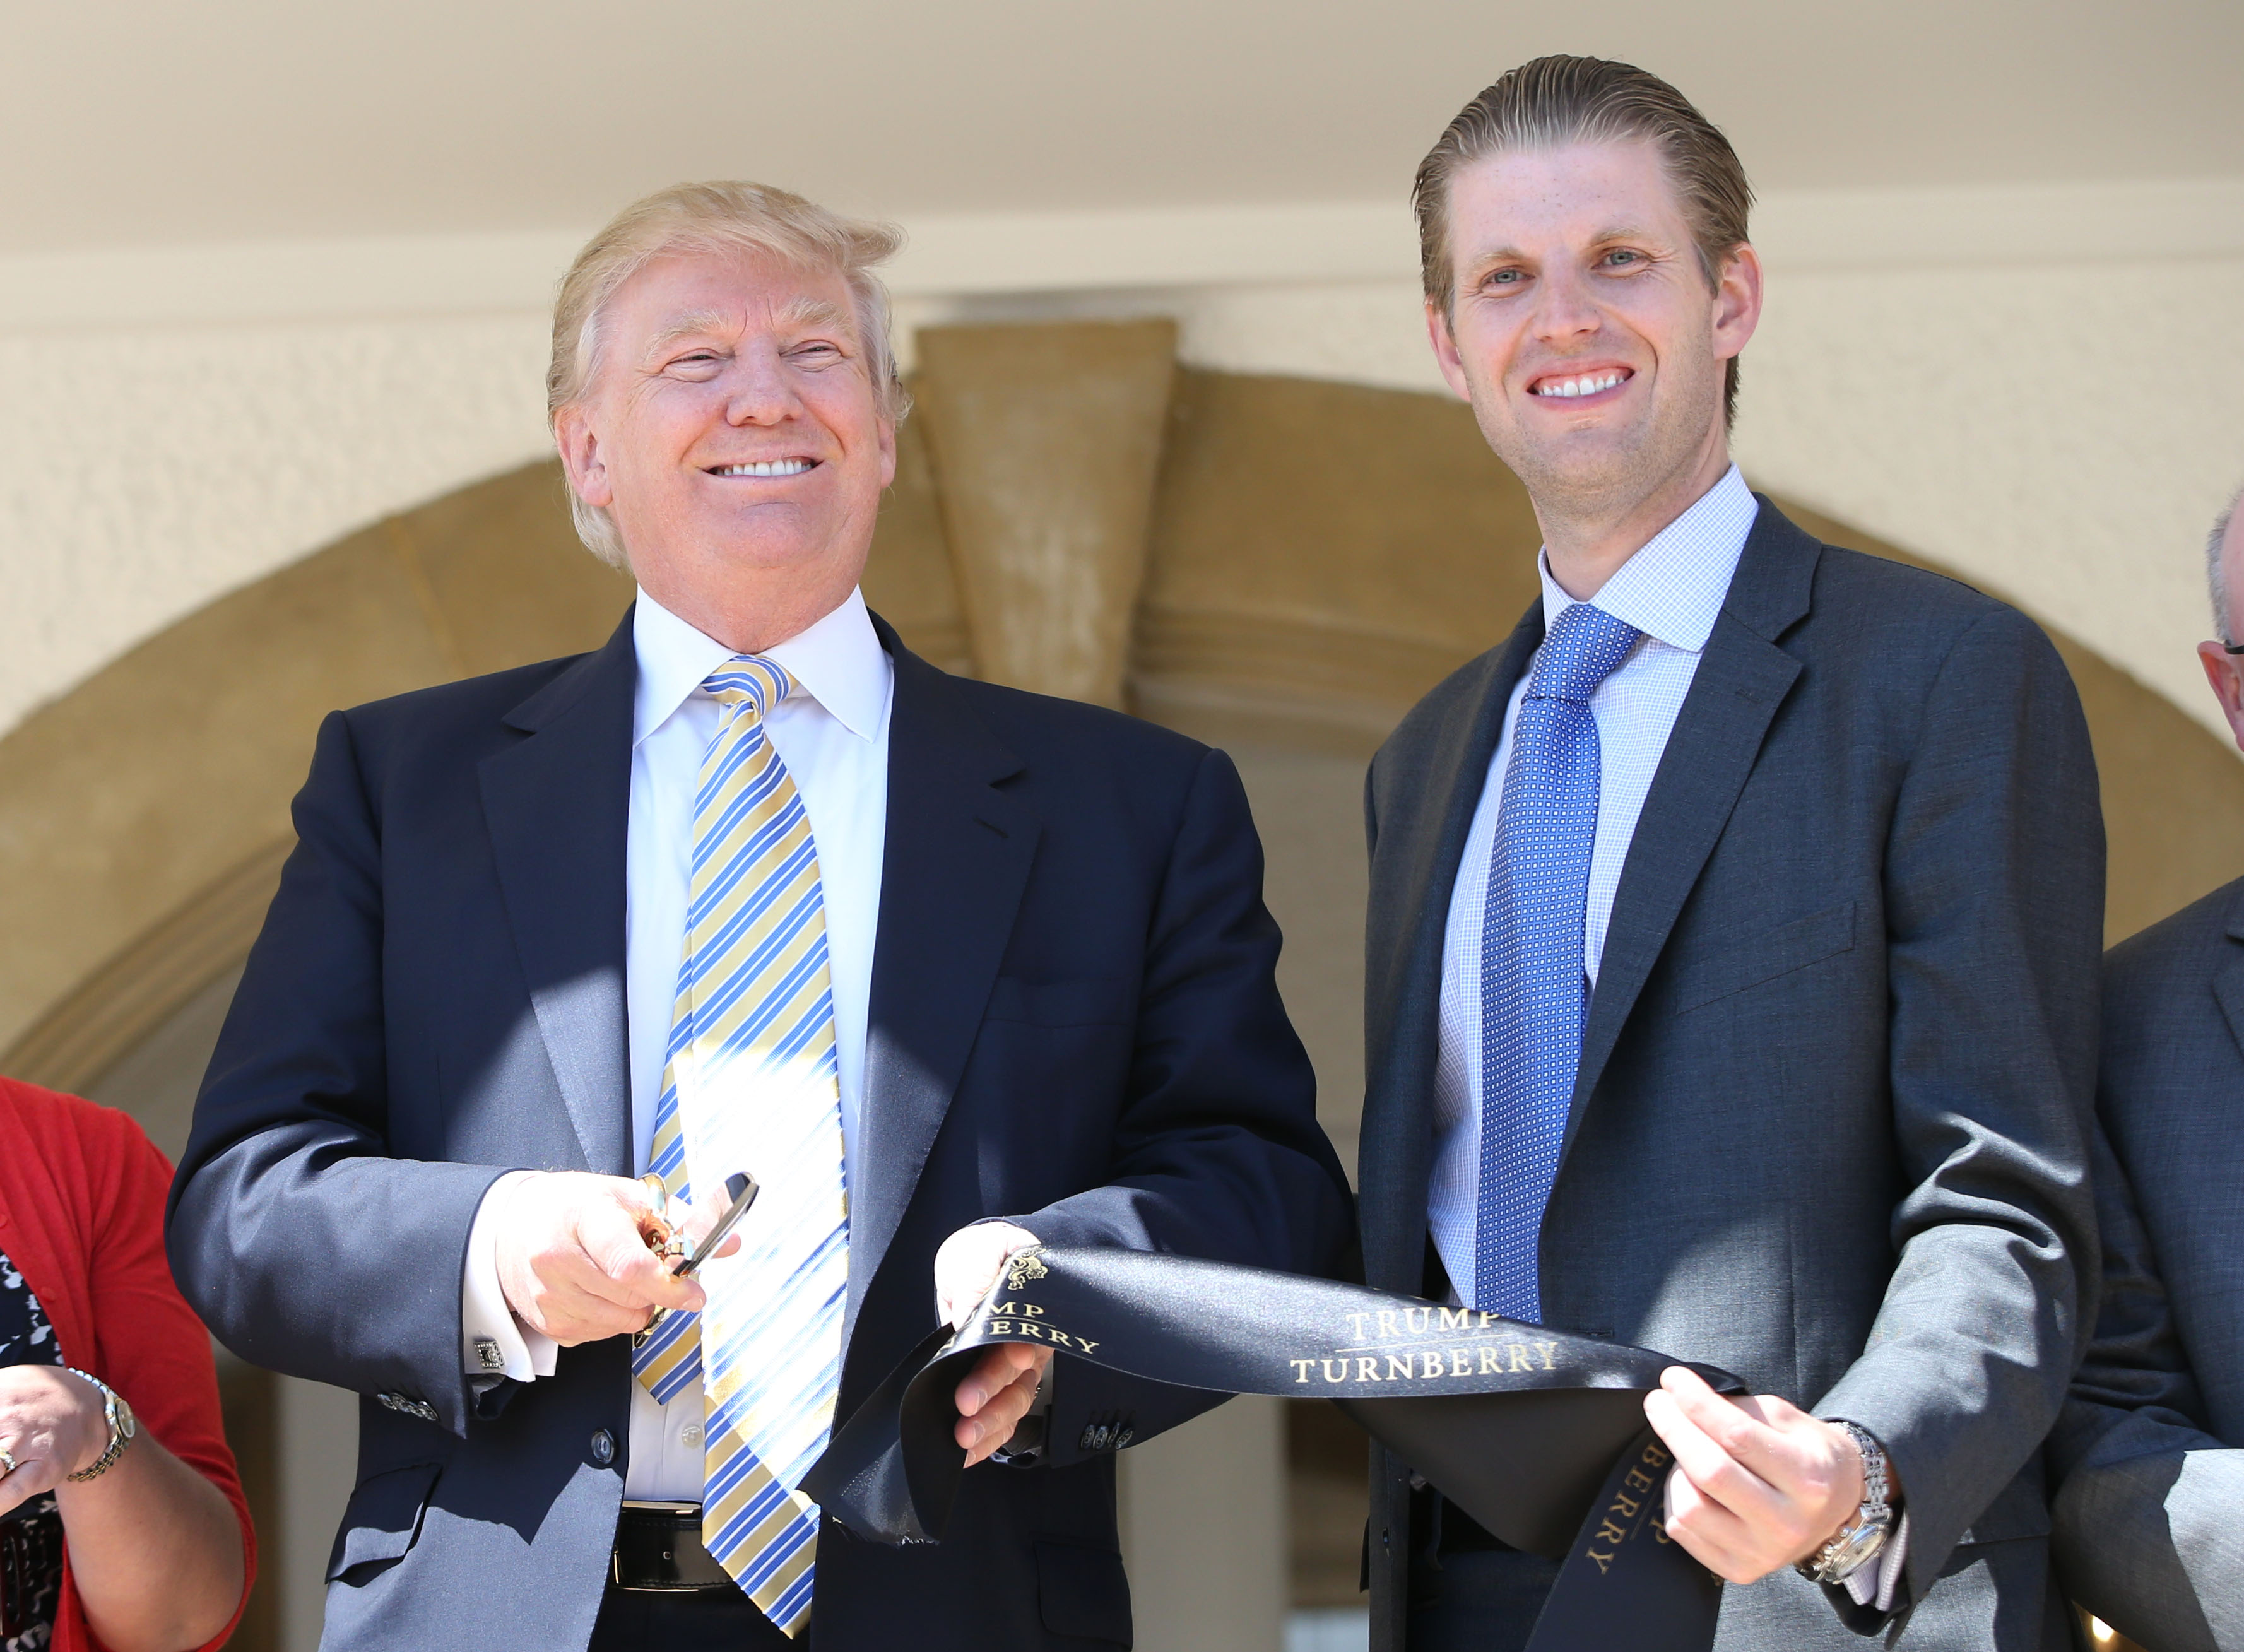 Donald Trump Visits Turnberry Golf Club